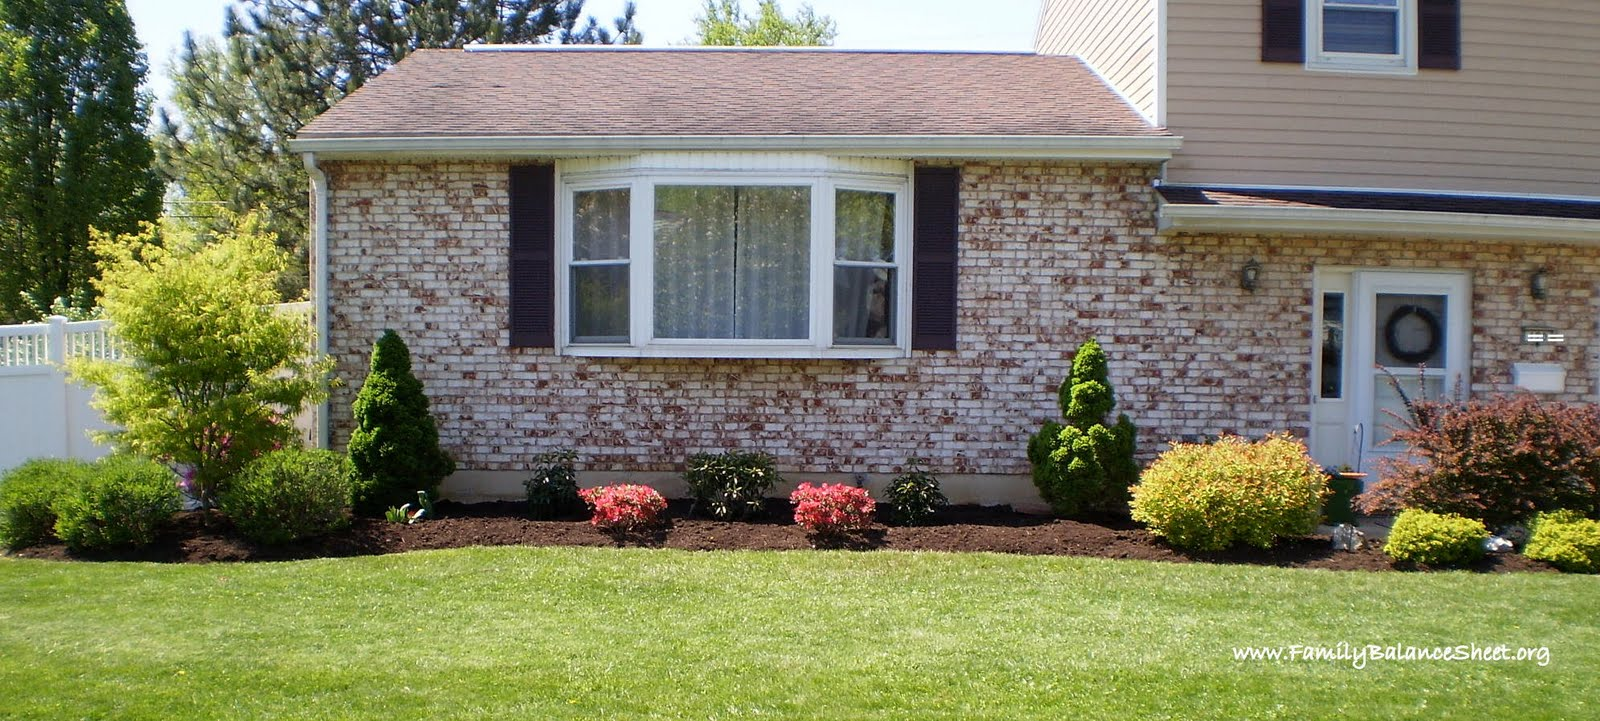 15 tips to help you design your front yard save money too for Front yard landscaping ideas